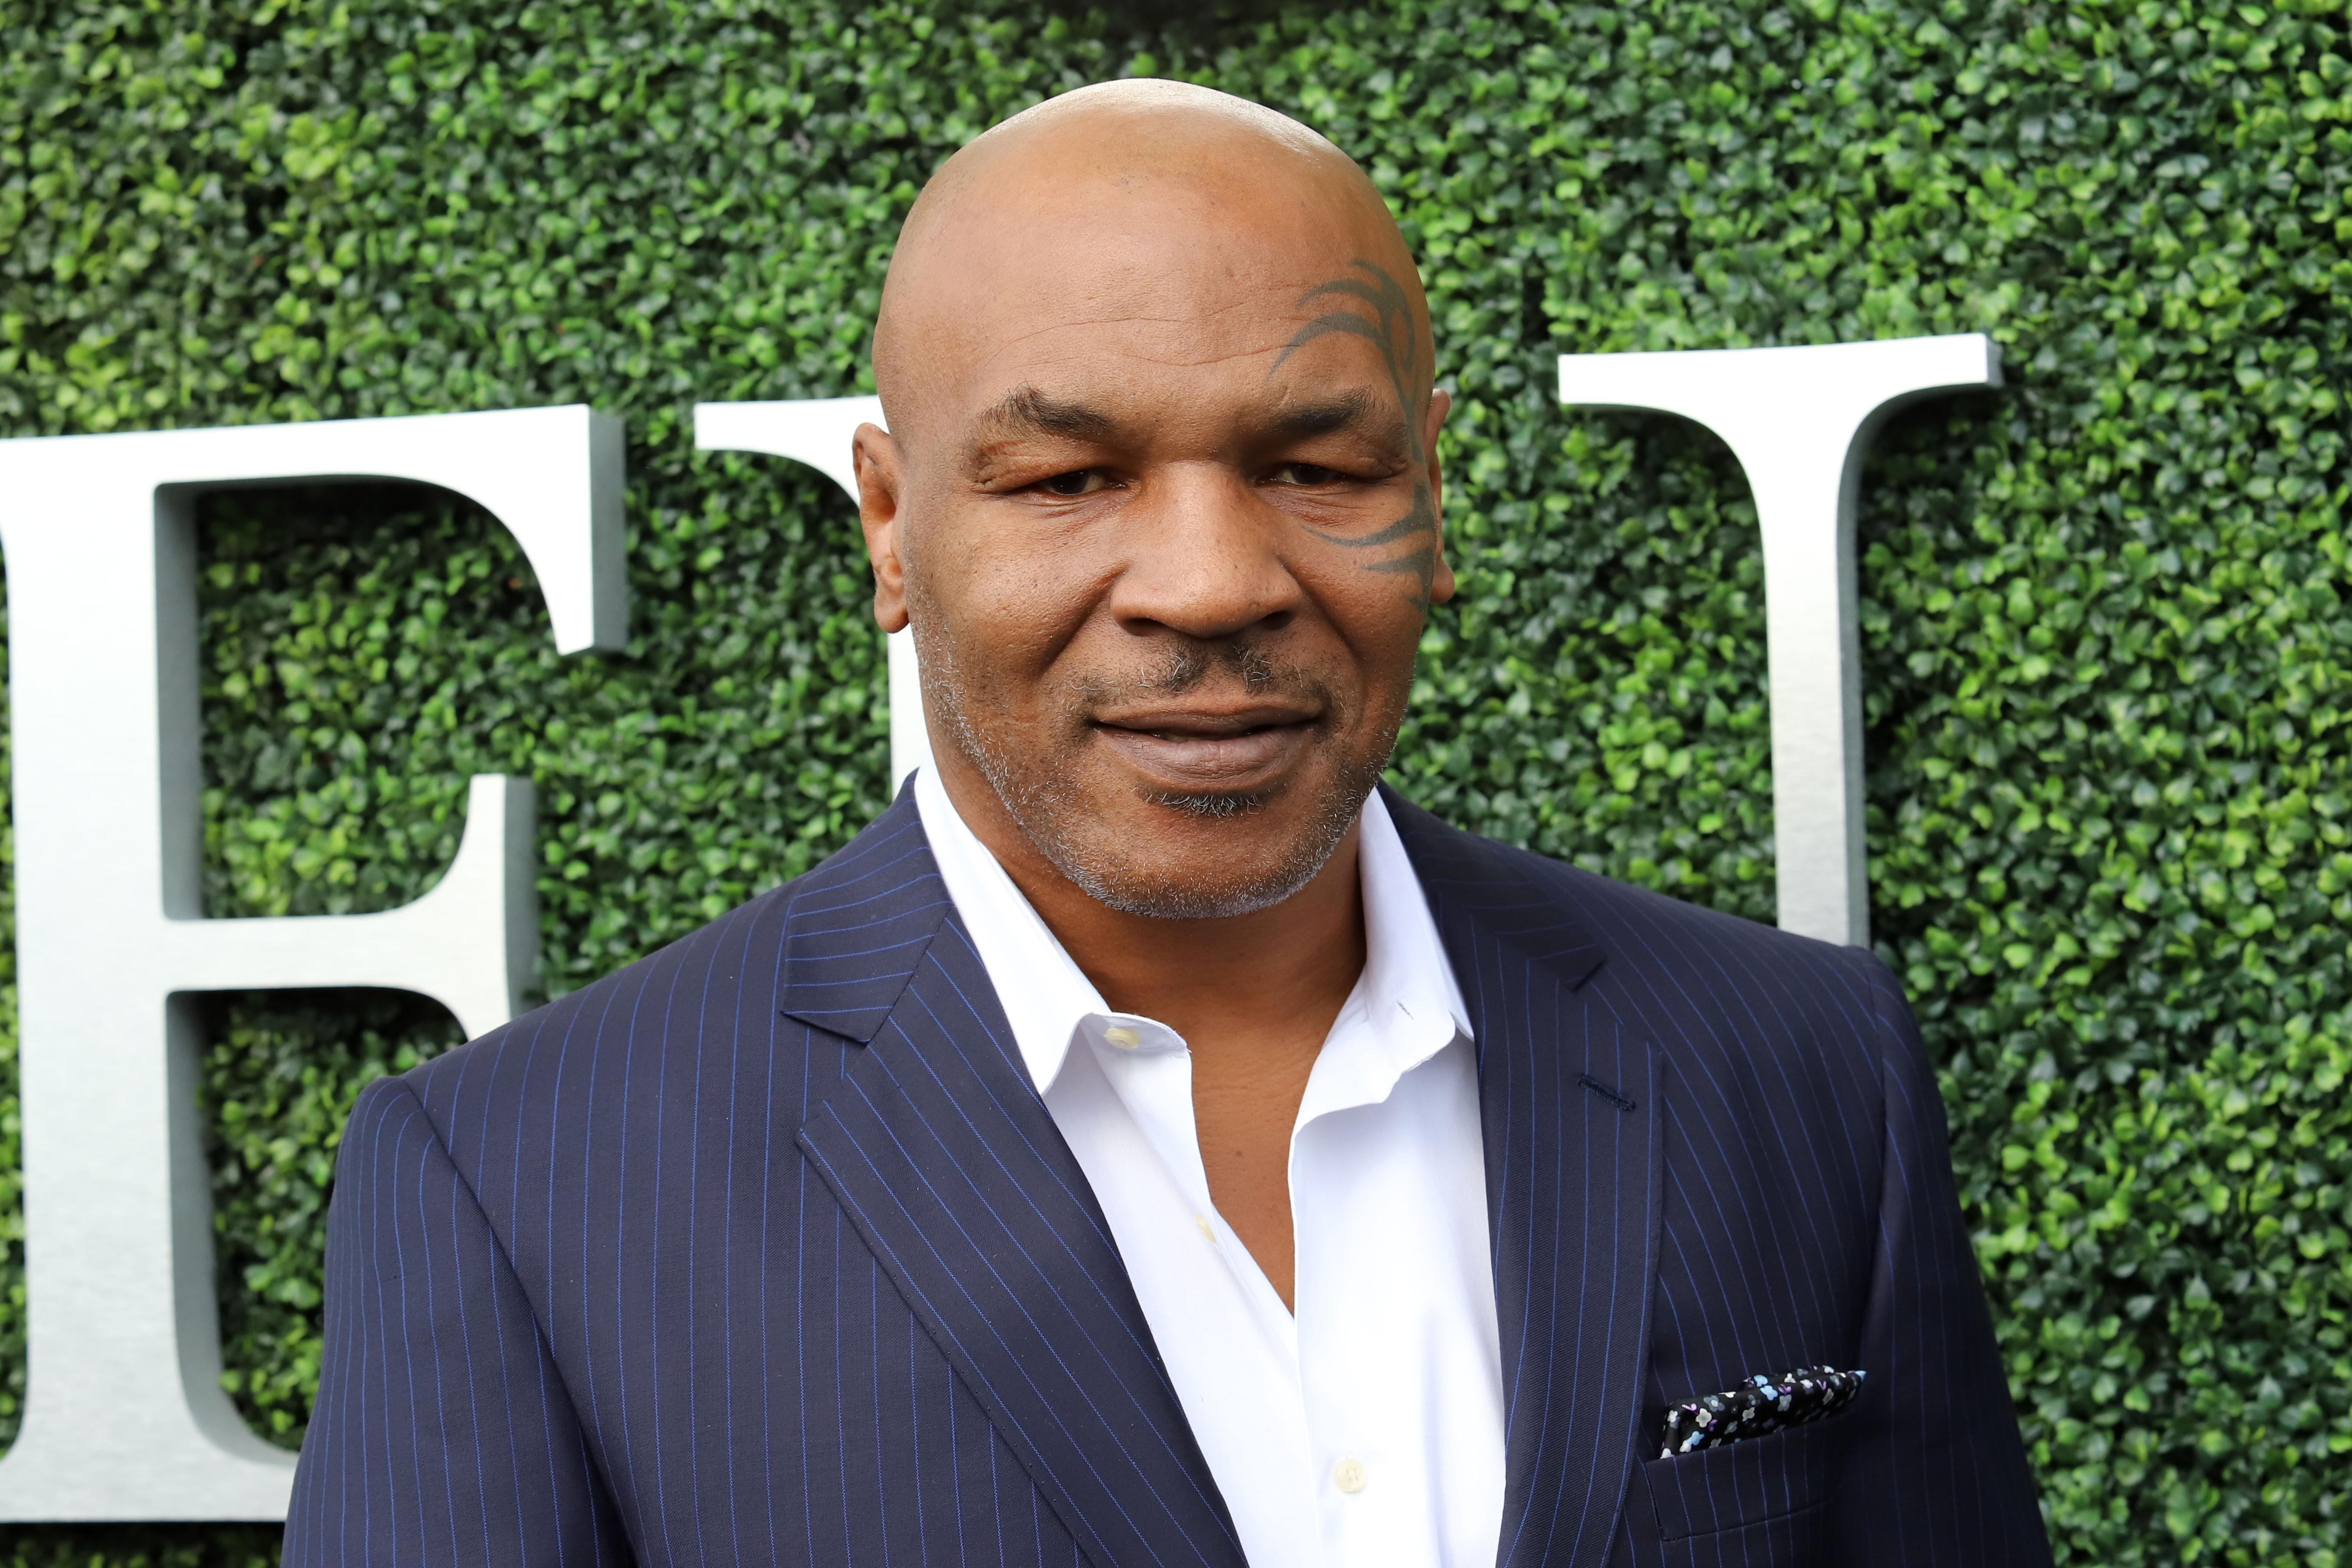 """<p>Former boxing champ and all-round controversial figure Mike Tyson is a known fan of The Donald. 'He should be president of the United States,' he told <a href=""""https://www.huffingtonpost.co.uk/entry/mike-tyson-endorses-donald-trump-2016_us_562e8853e4b00aa54a4aba46"""" rel=""""nofollow noopener"""" target=""""_blank"""" data-ylk=""""slk:HuffPo"""" class=""""link rapid-noclick-resp"""">HuffPo </a>back in 2015. (PA) </p>"""